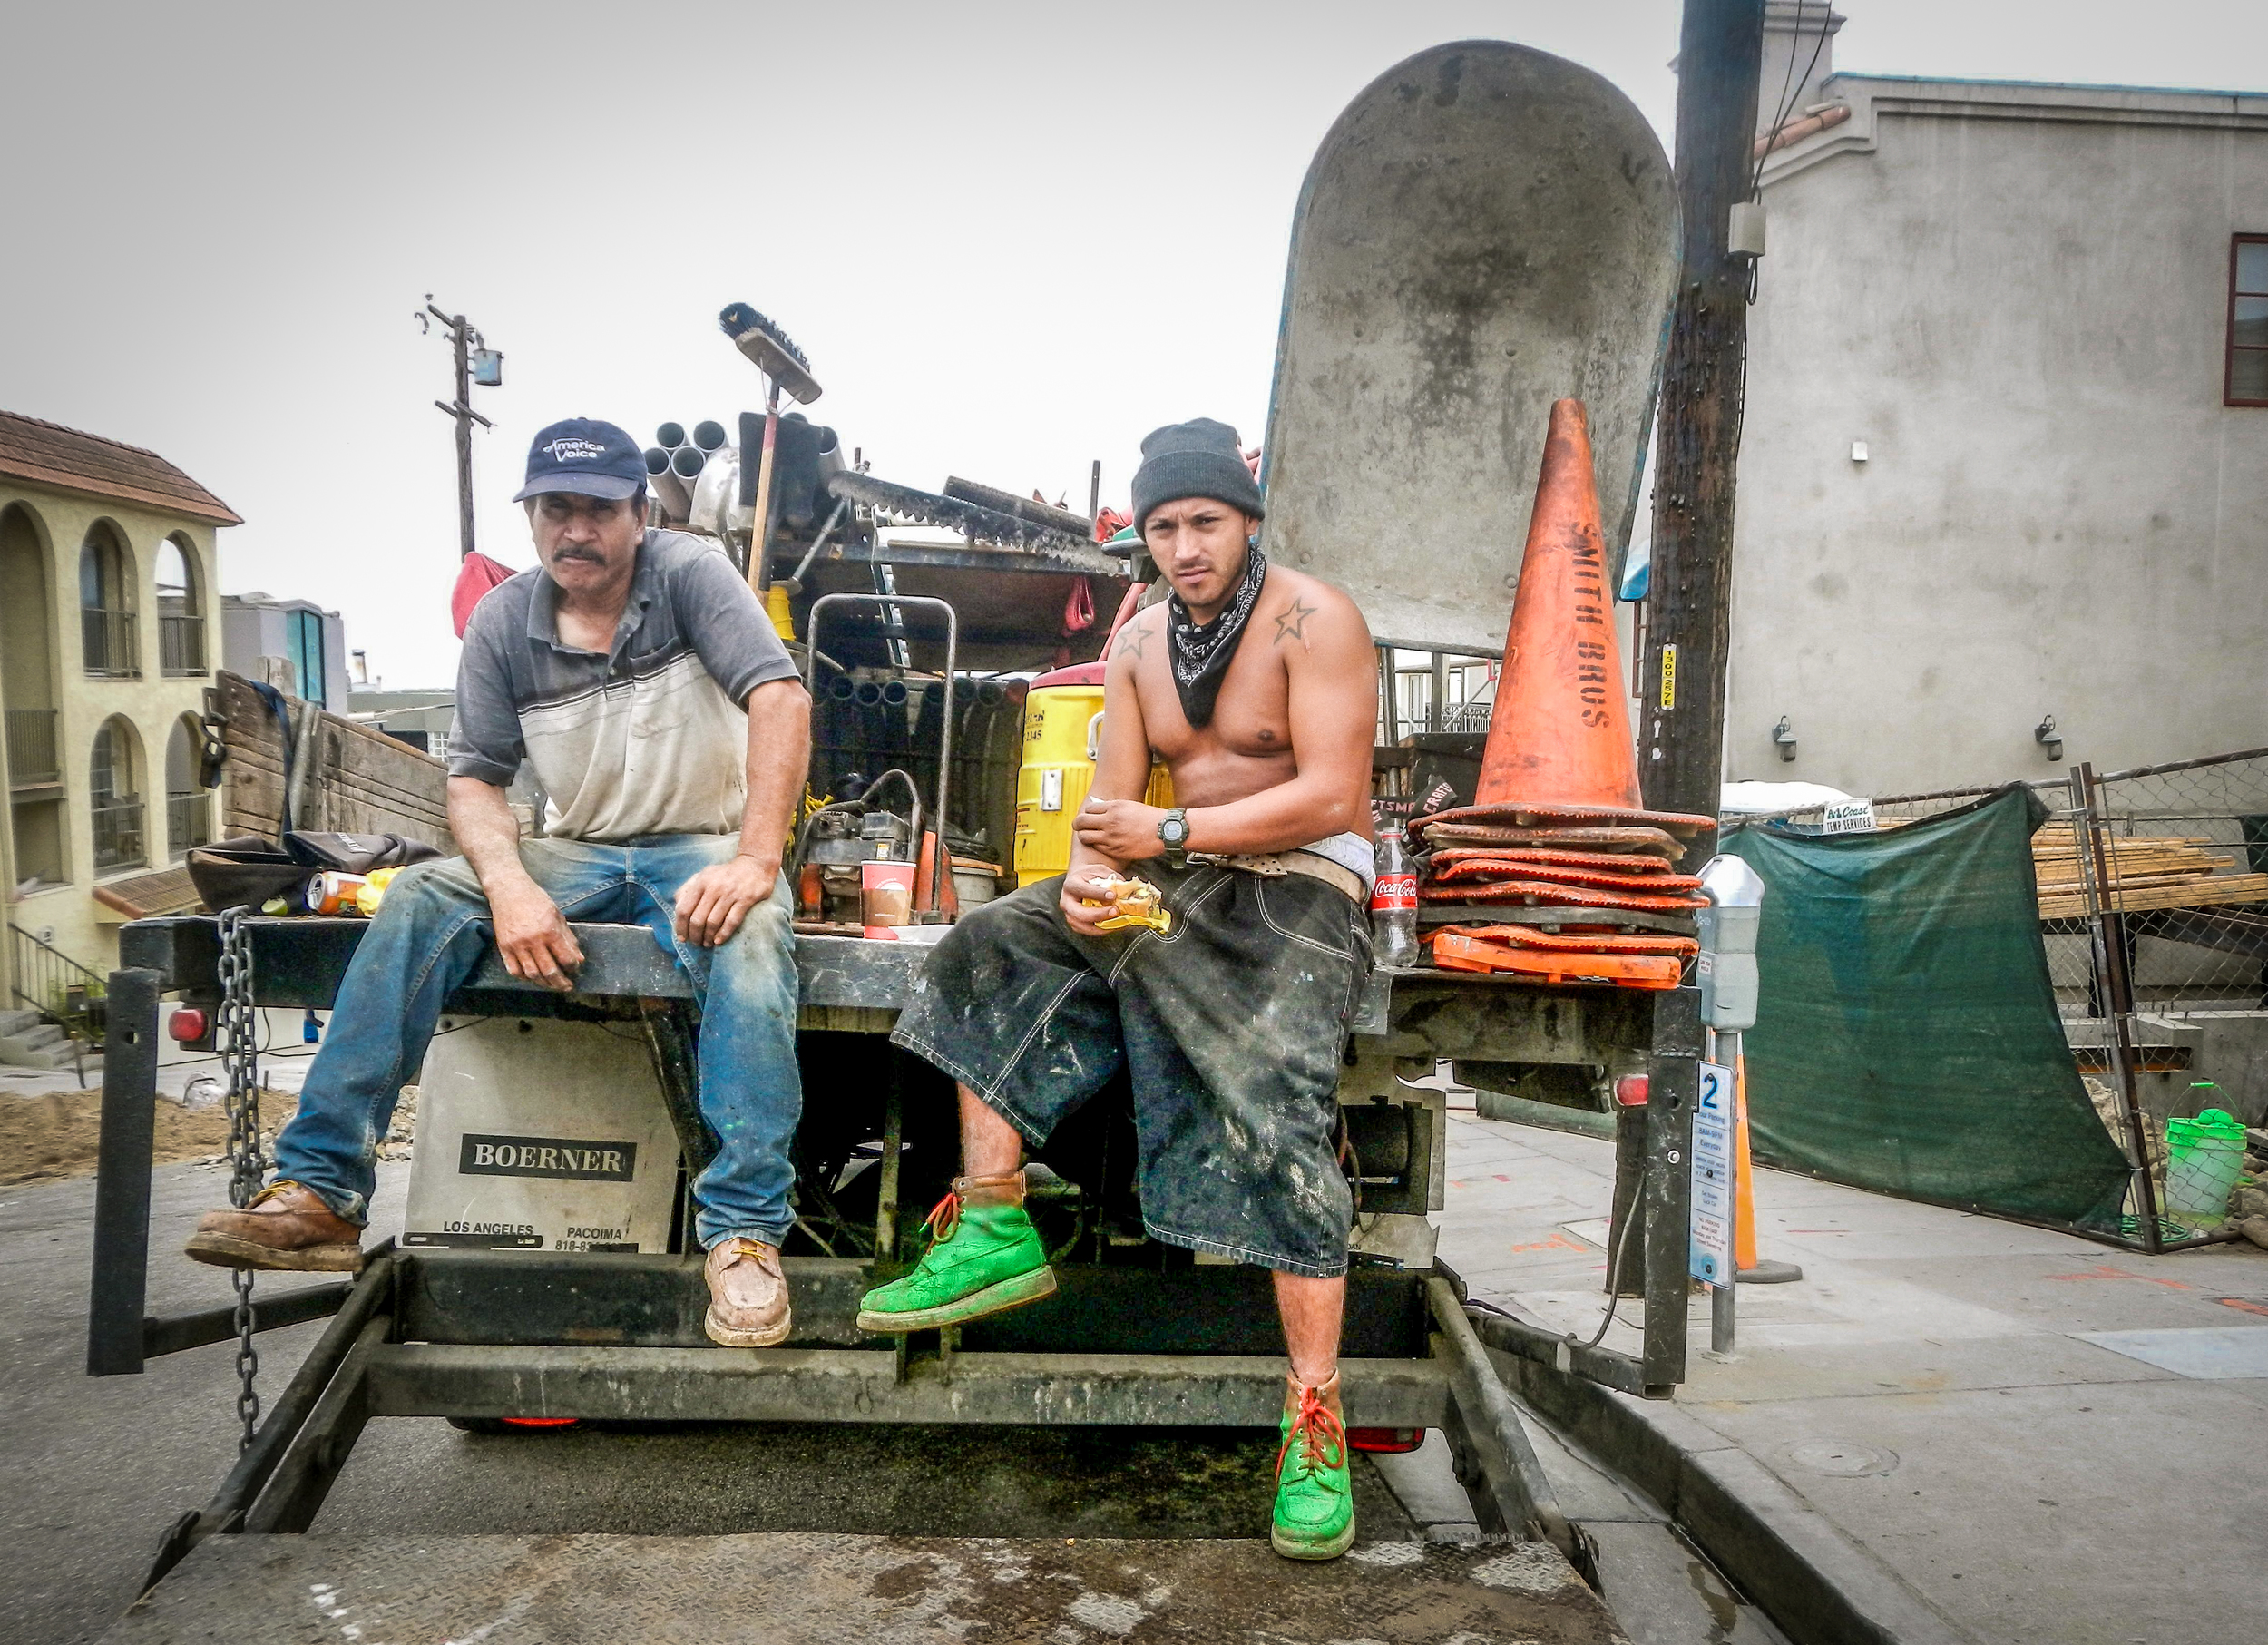 Hector and Tomas - Construction Workers - Durango, Mexico.